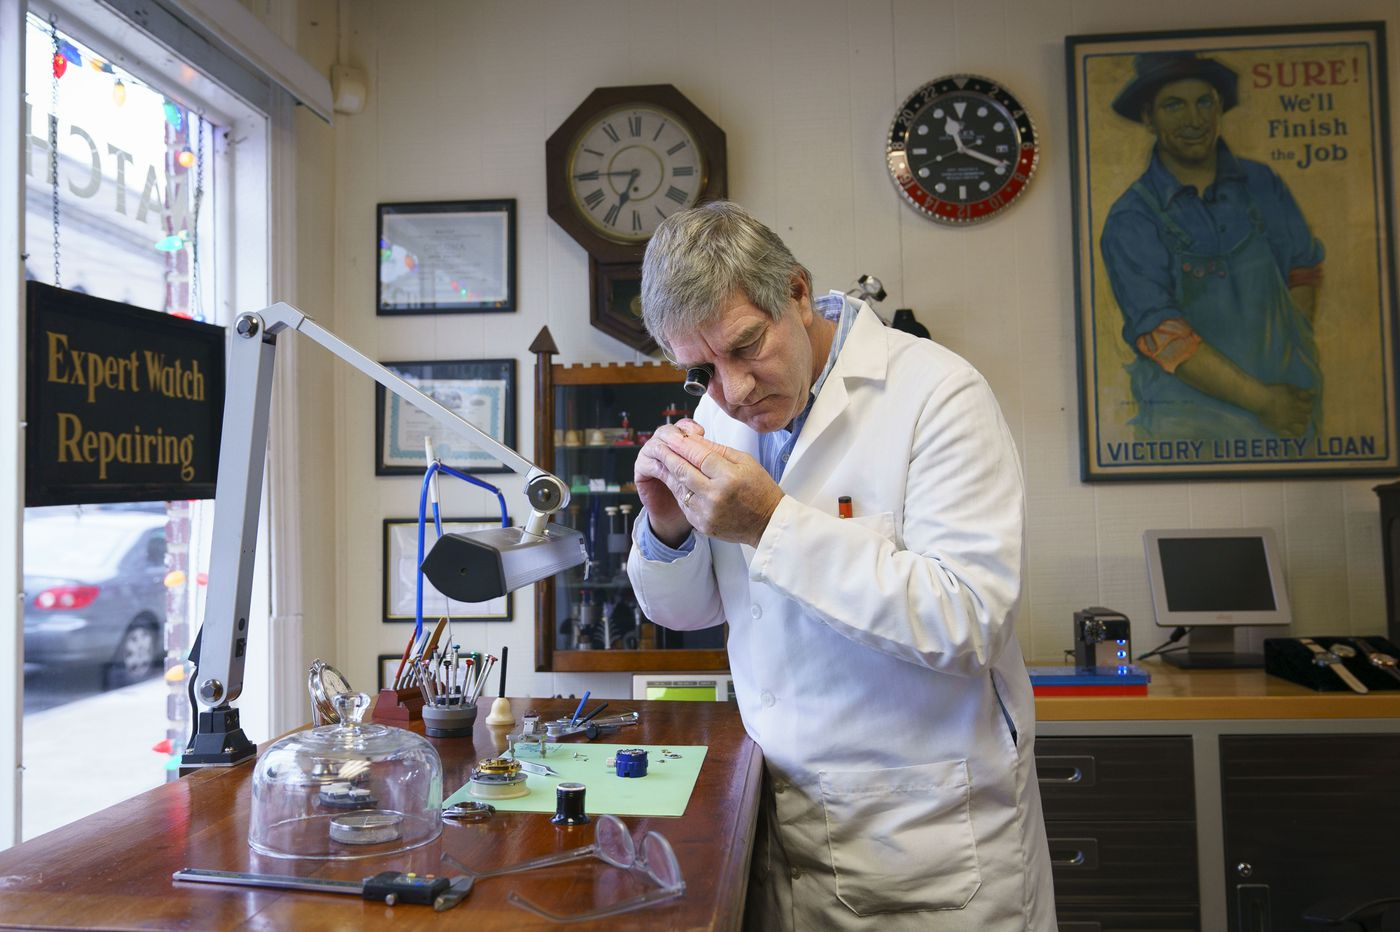 Repairing watches is a 'dying' art, but this Wayne watchmaker is turning away customers